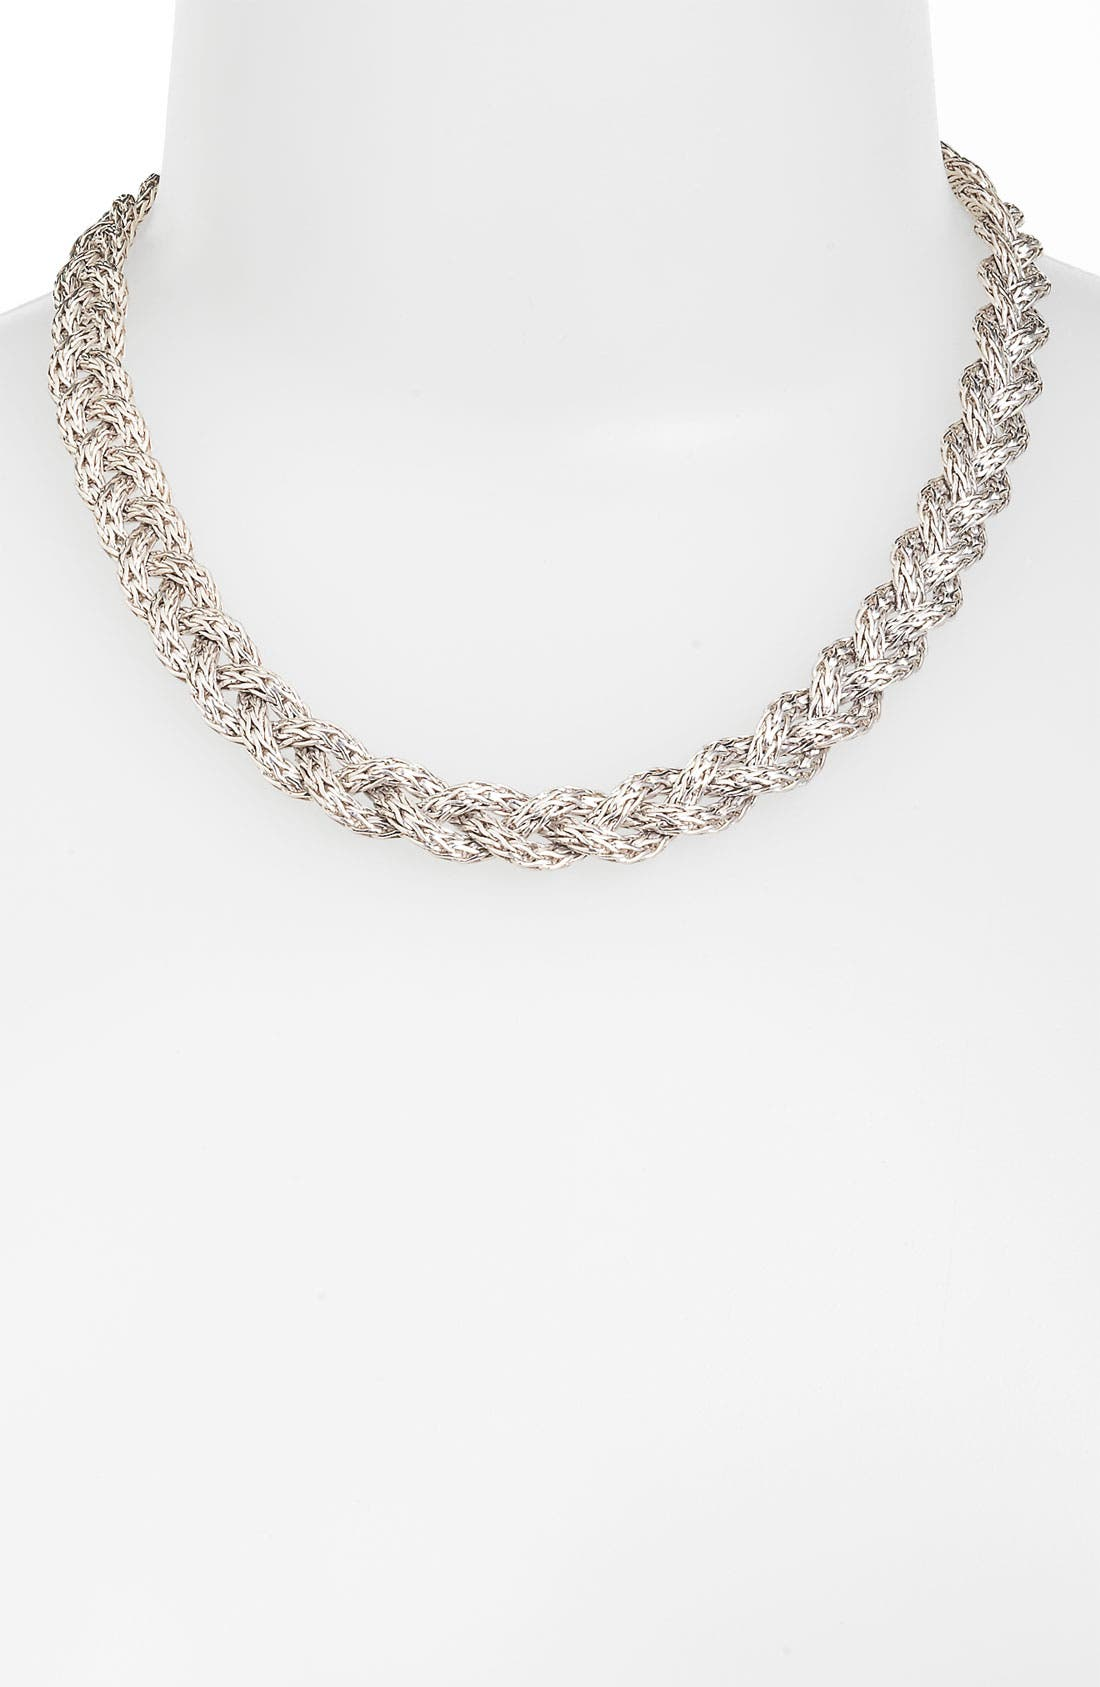 Alternate Image 1 Selected - John Hardy 'Classic Chain' Small Braided Chain Necklace